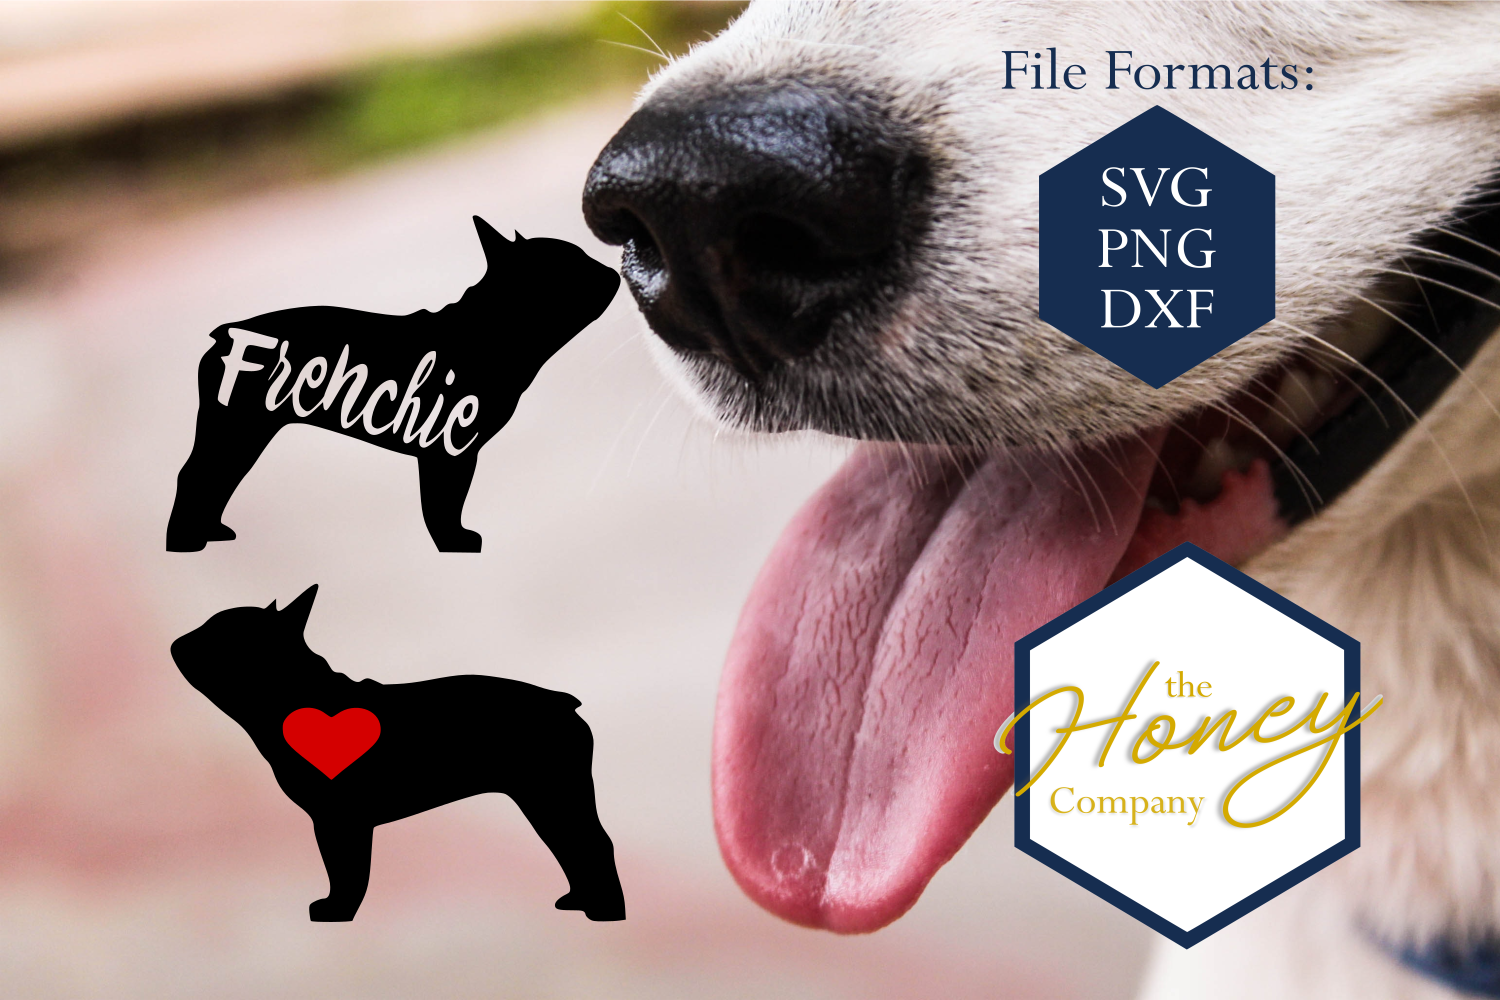 French Bulldog SVG PNG DXF Dog Breed Lover Cut File Clipart example image 2